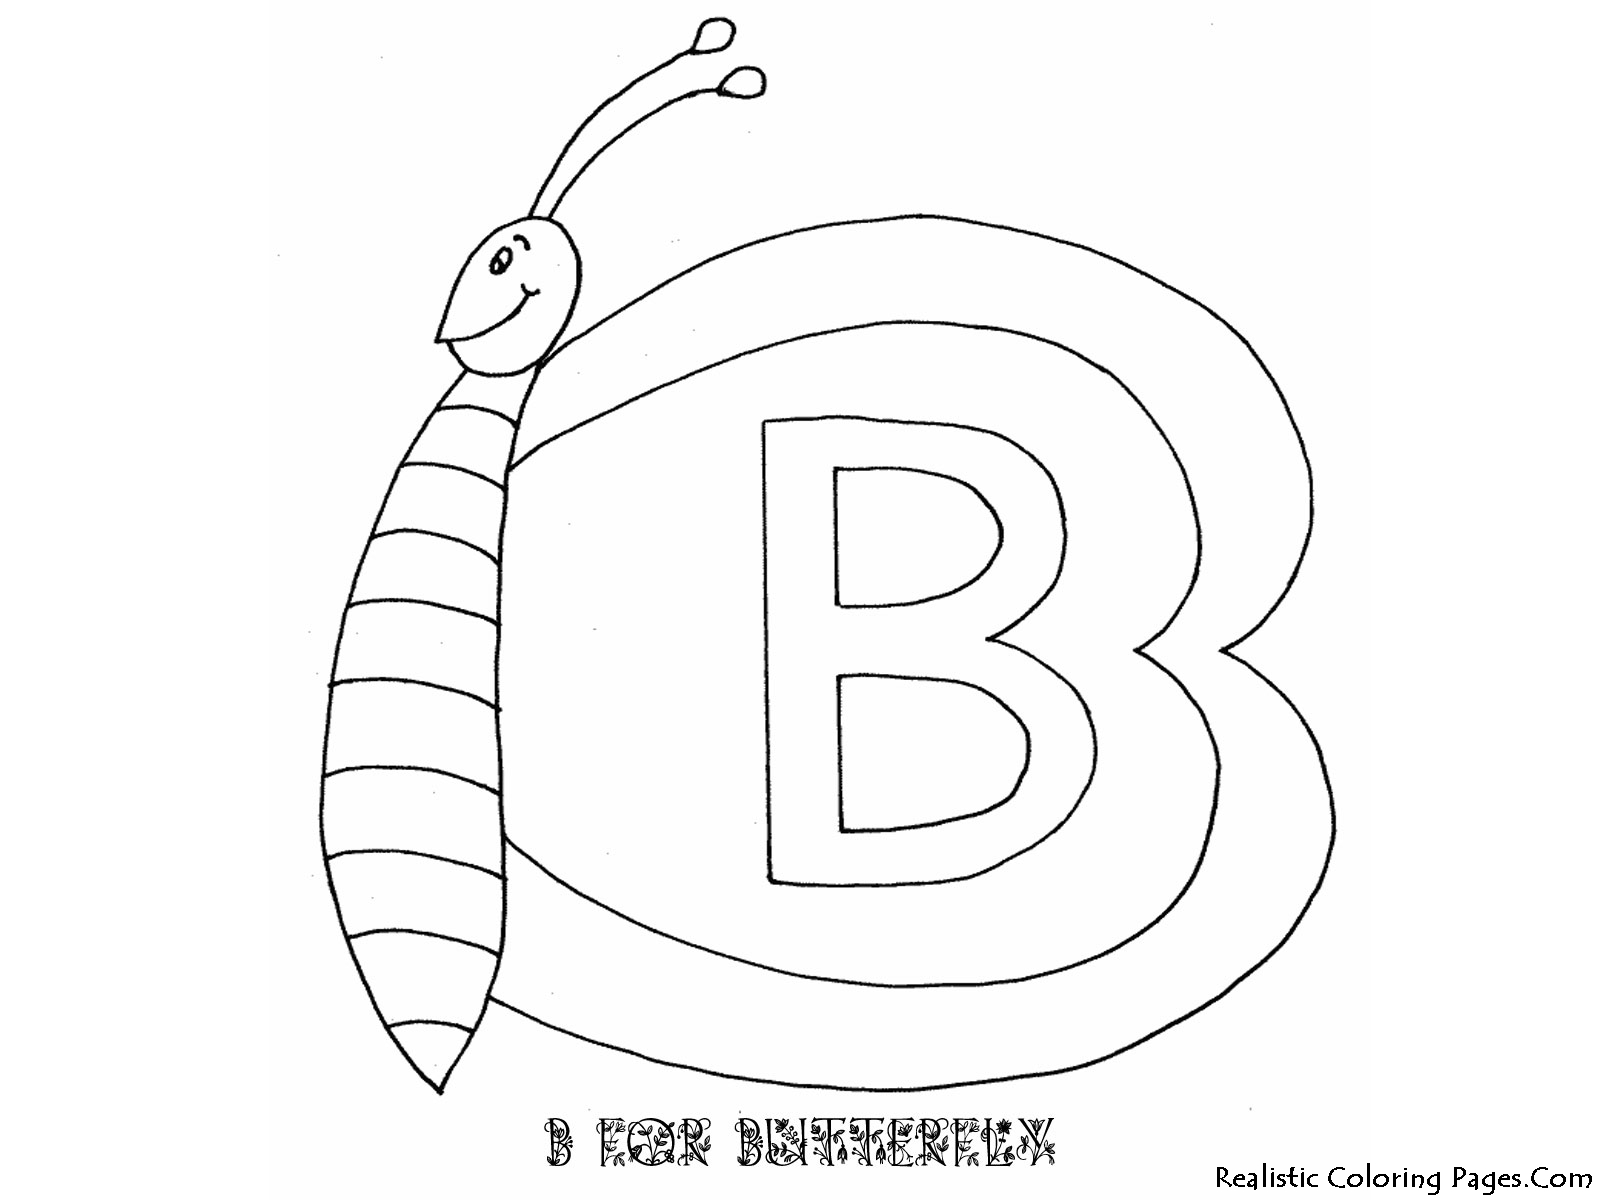 b for butterfly coloring pages - photo #12